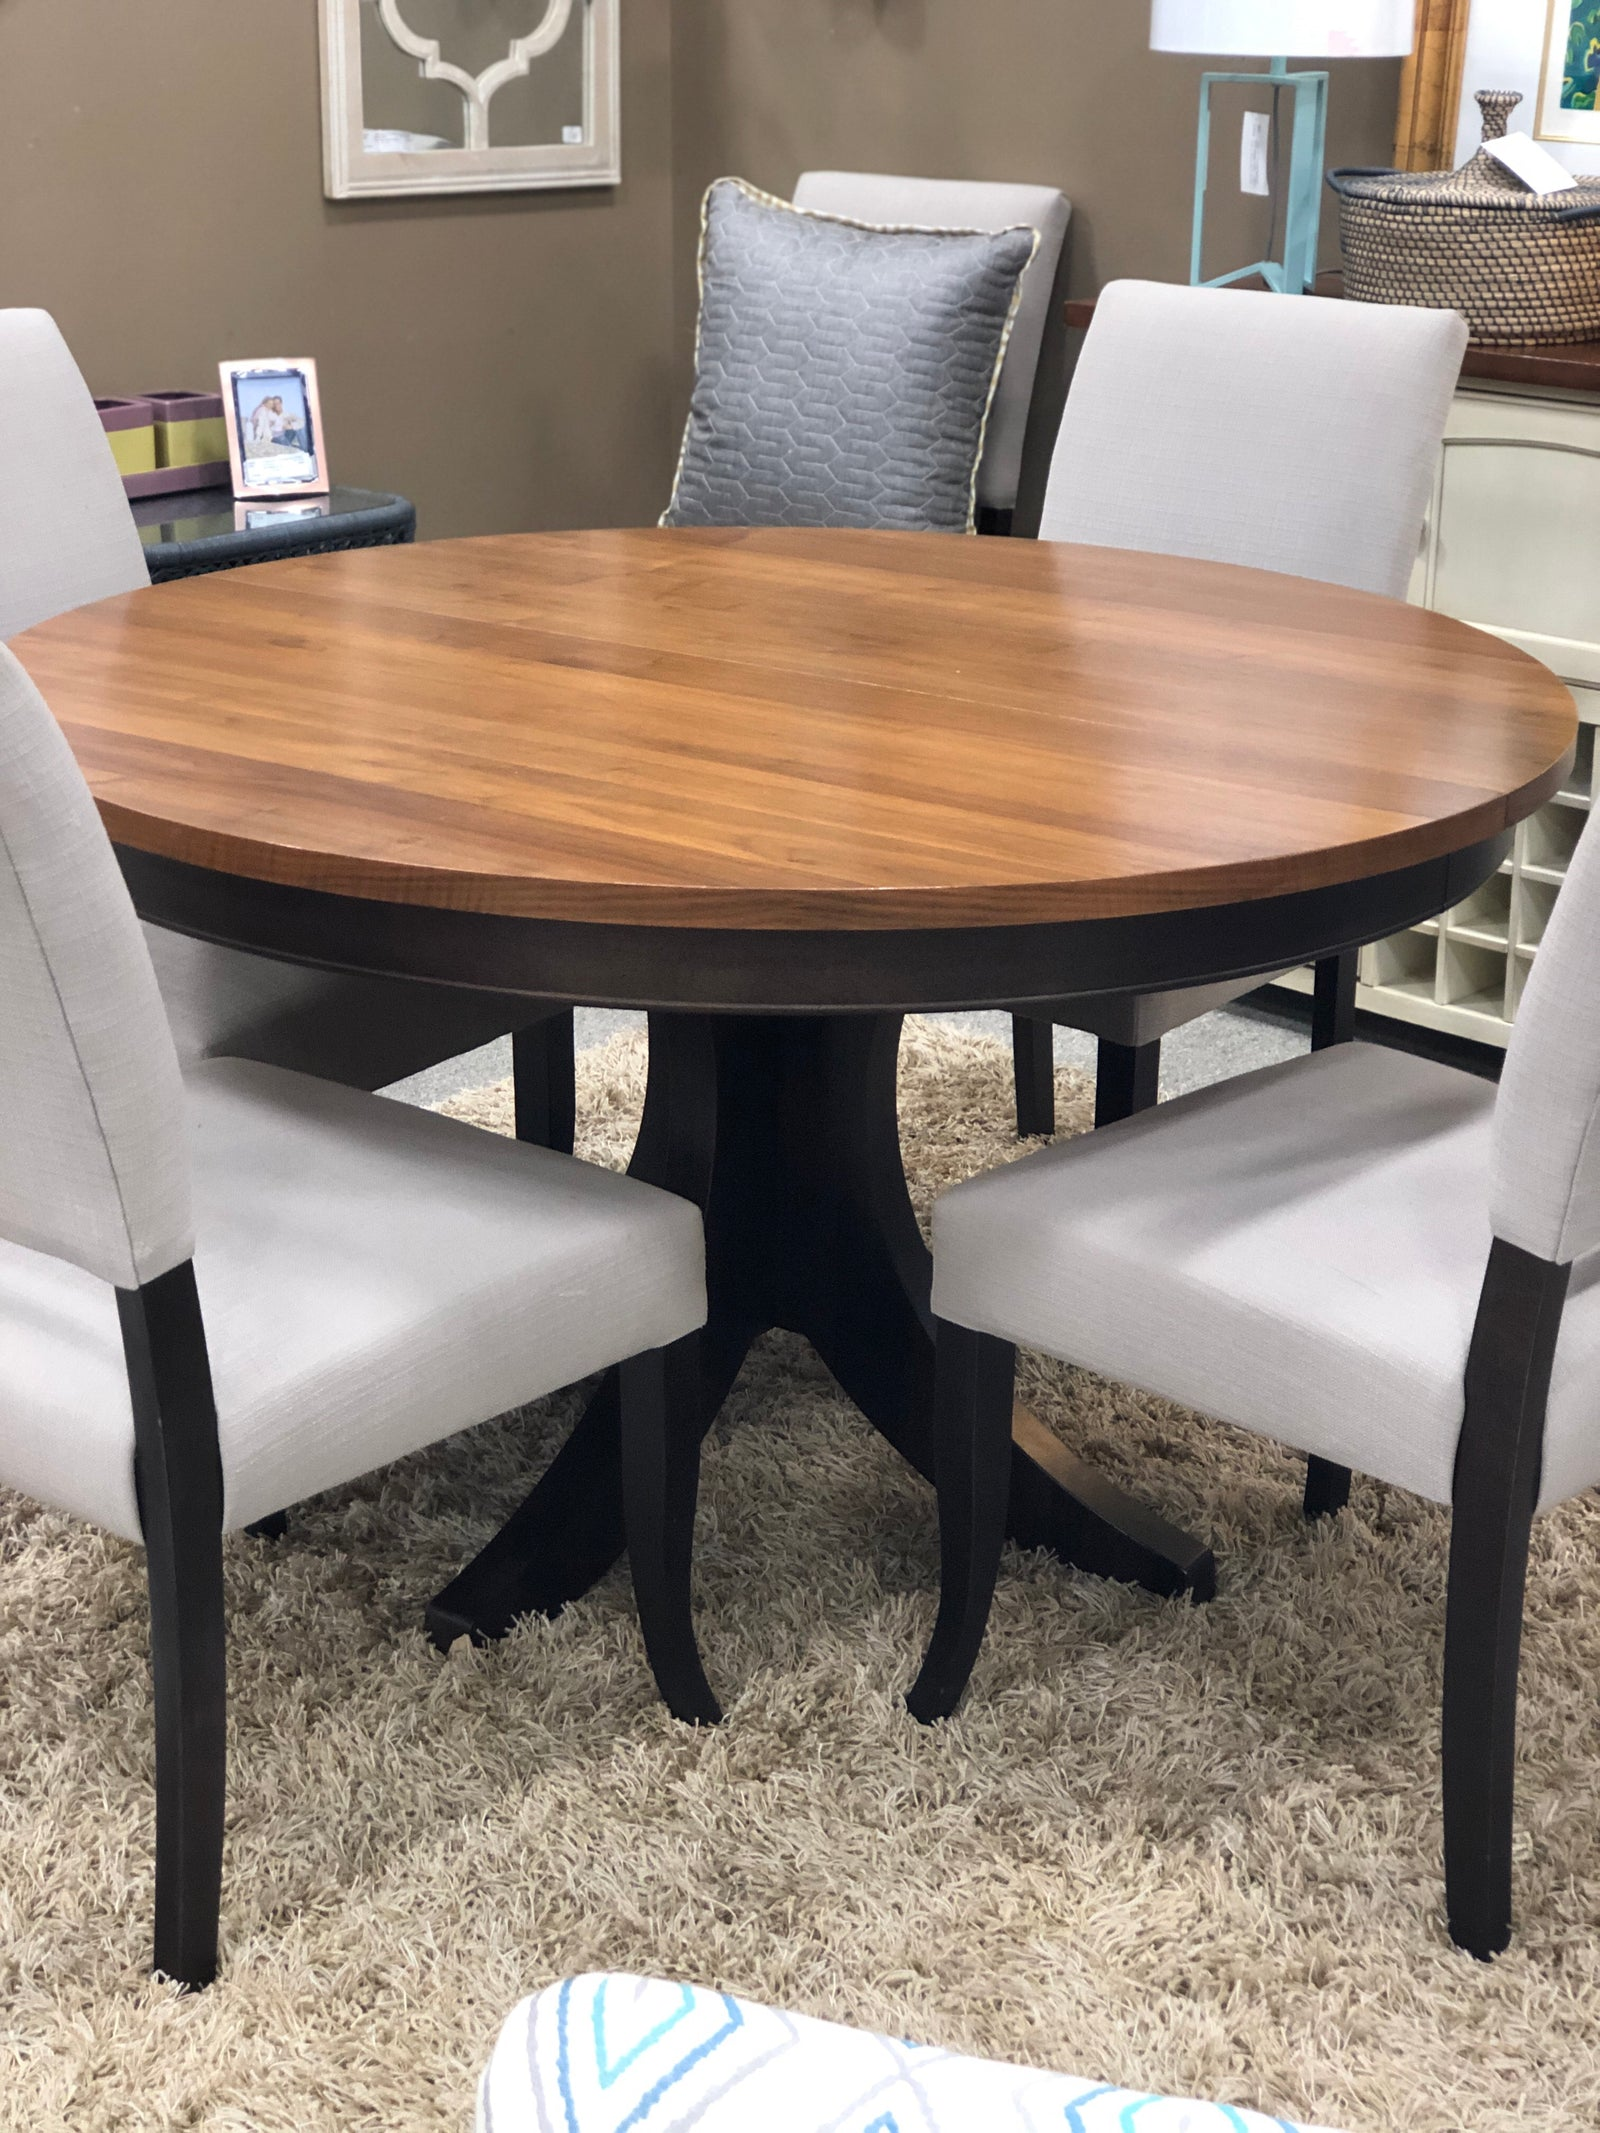 Dining Table W|6 Chairs